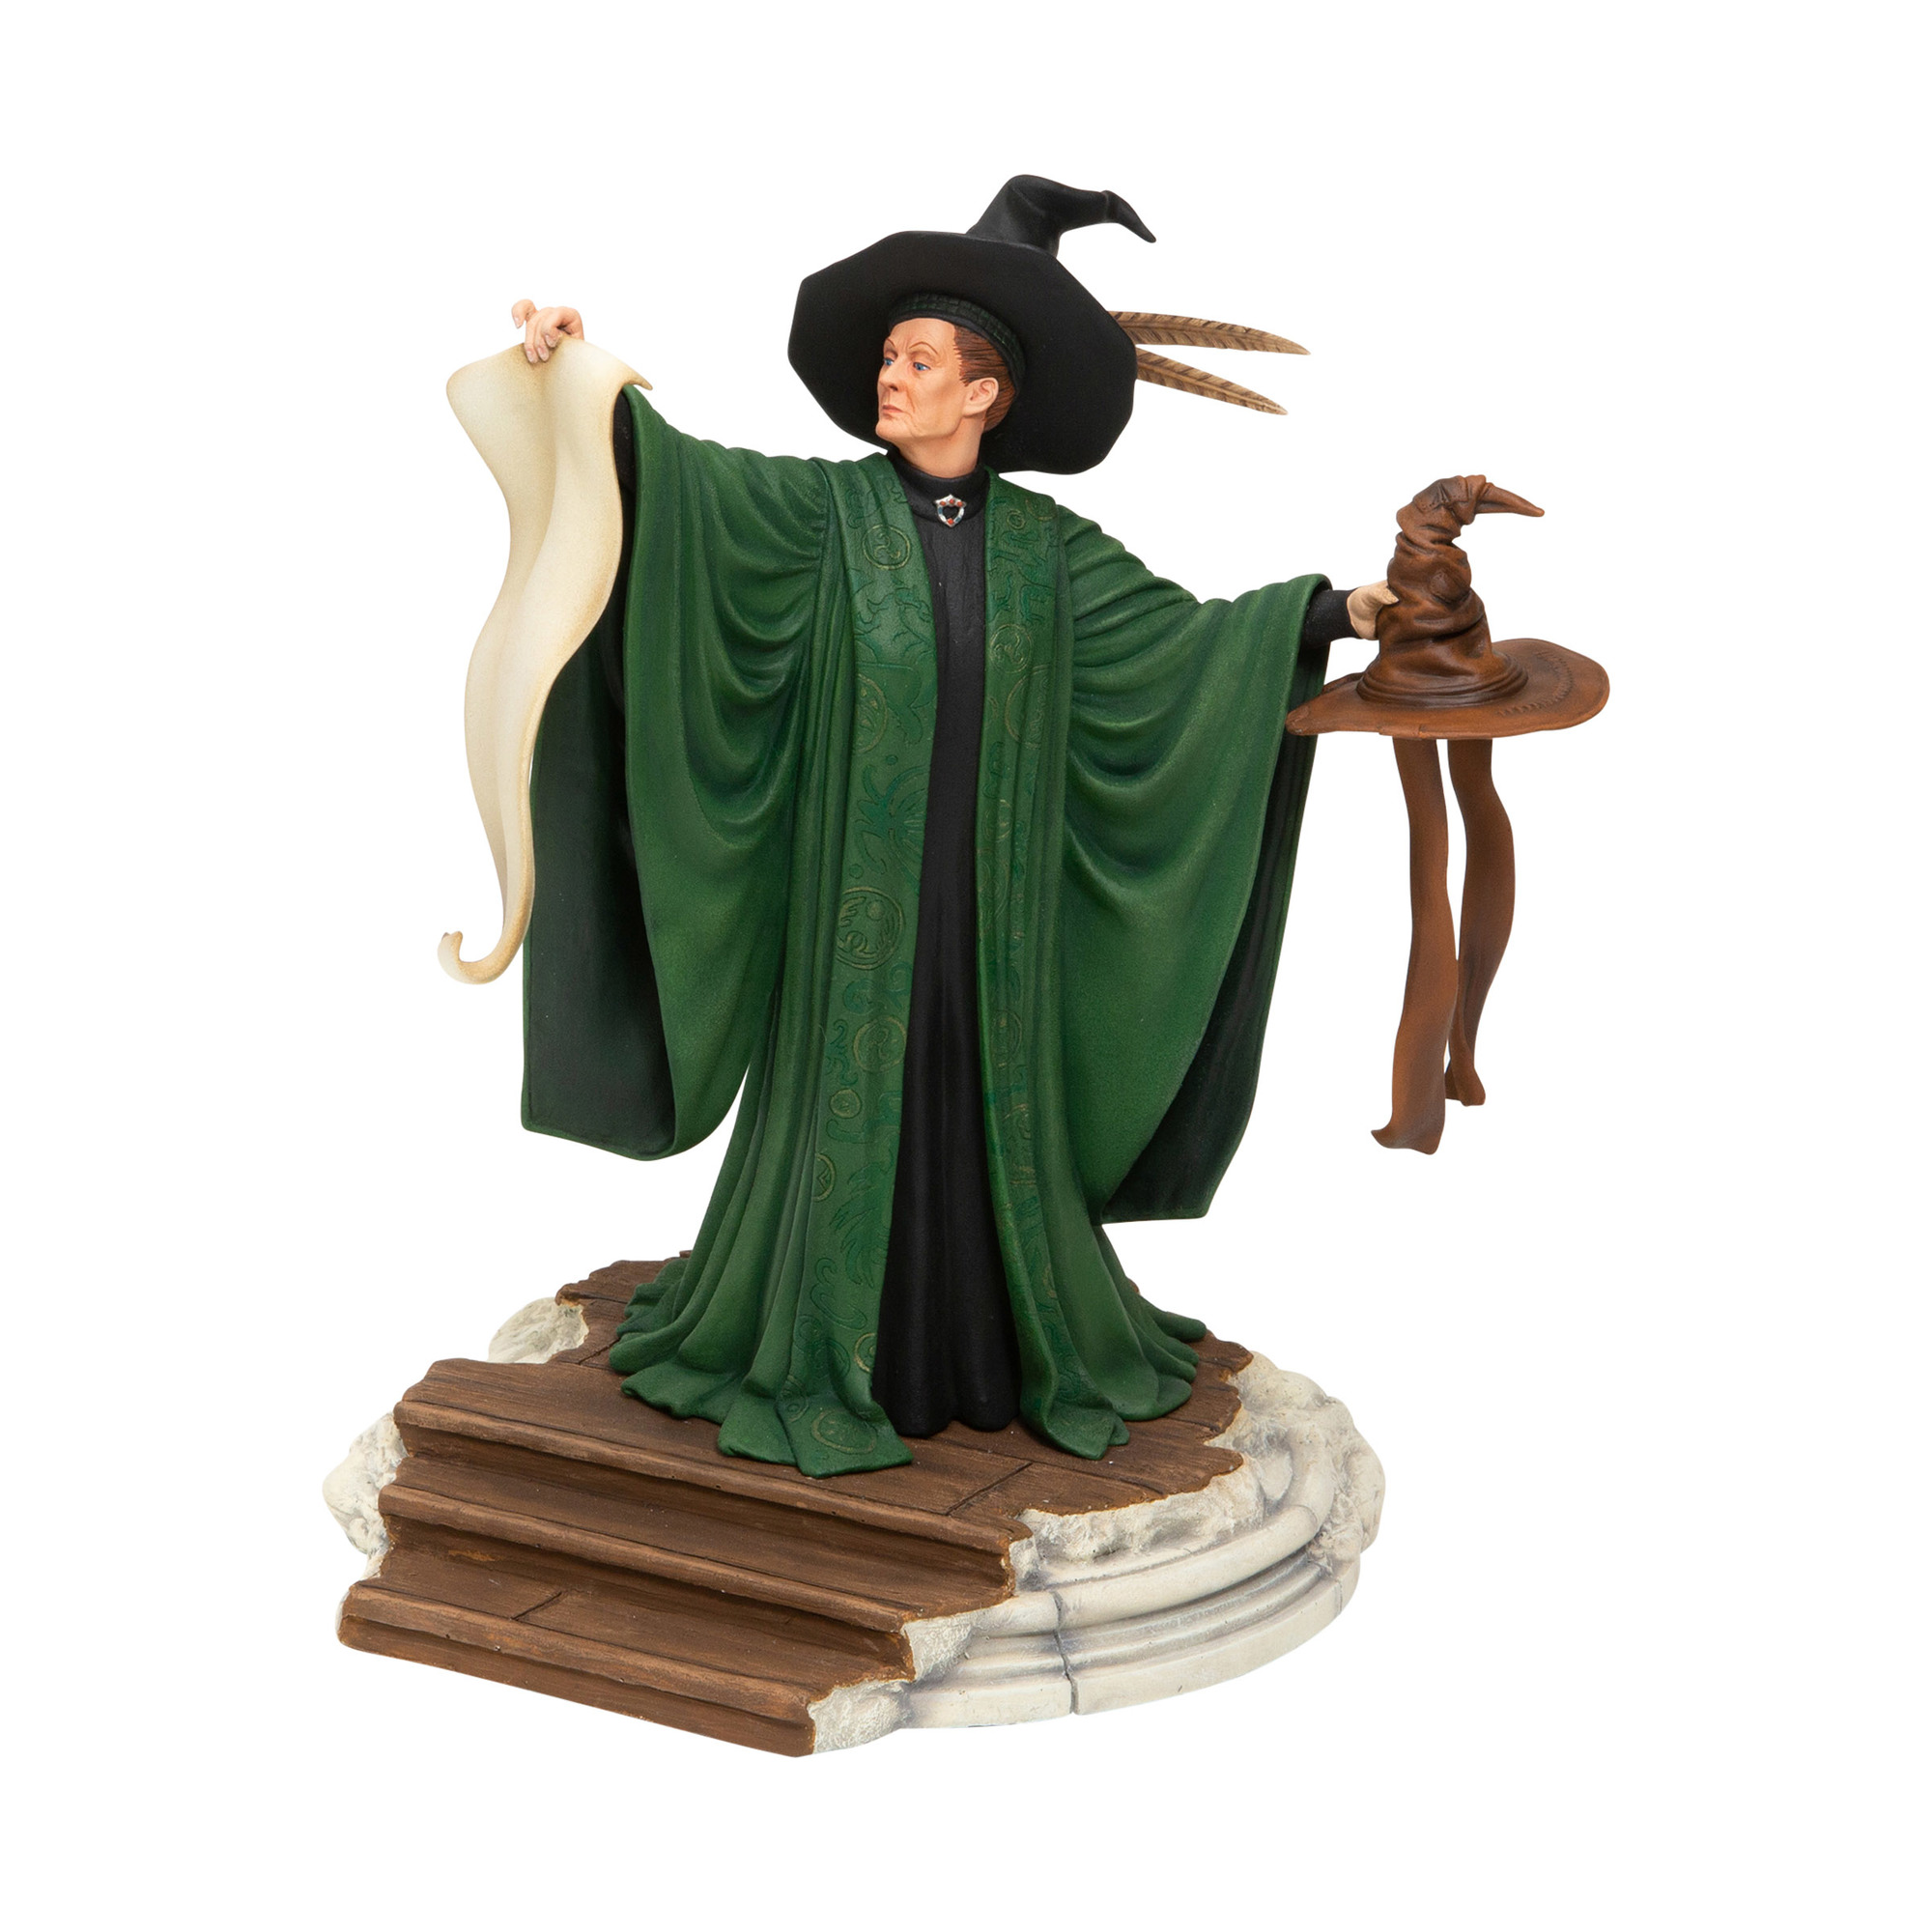 Wizarding World of Harry Potter Professor McGonagall Figurine